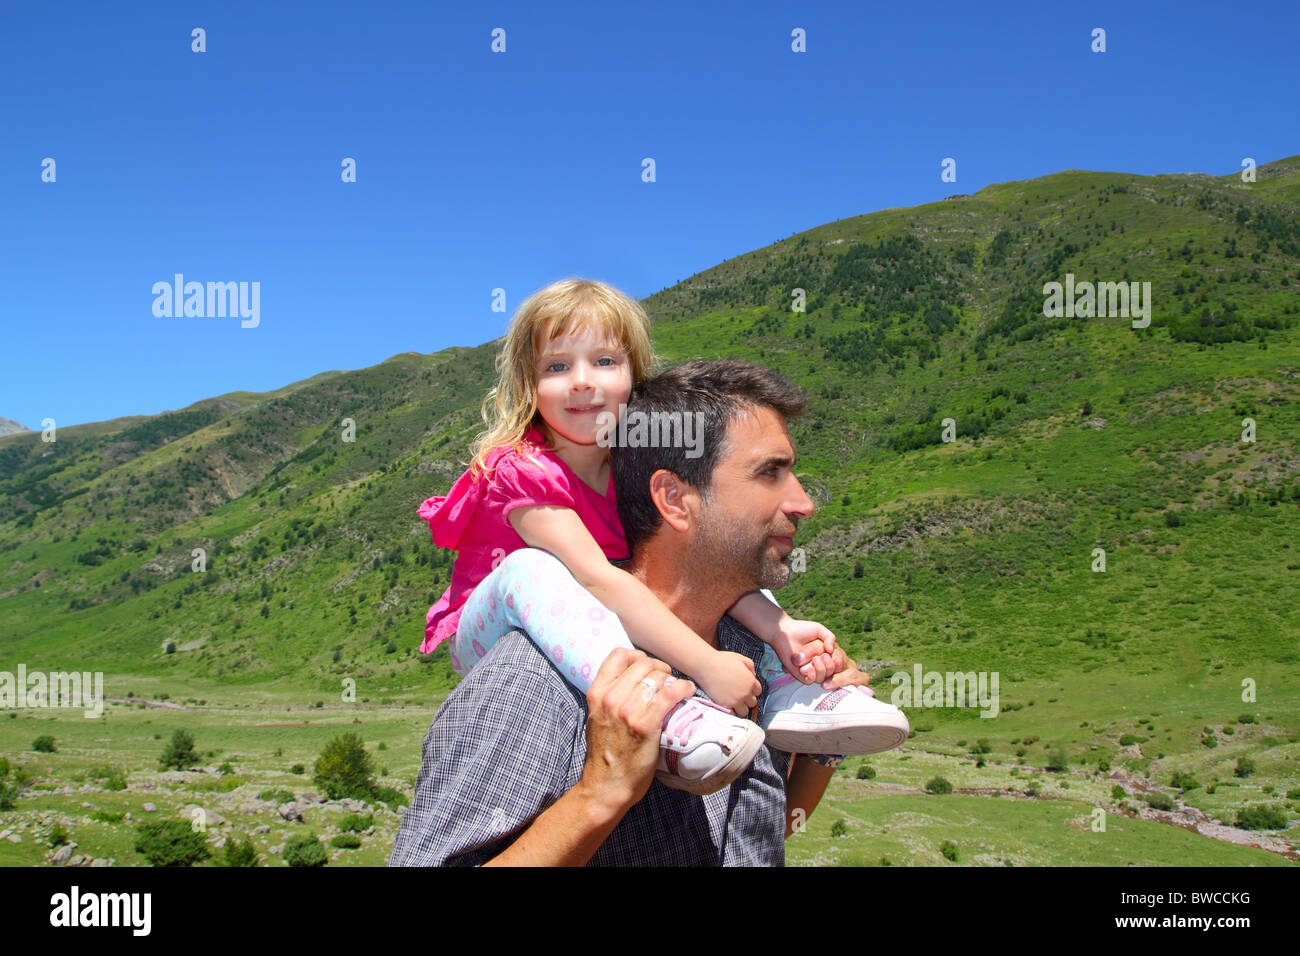 Explorer mountain little girl and father in green outdoor valley landscape - Stock Image